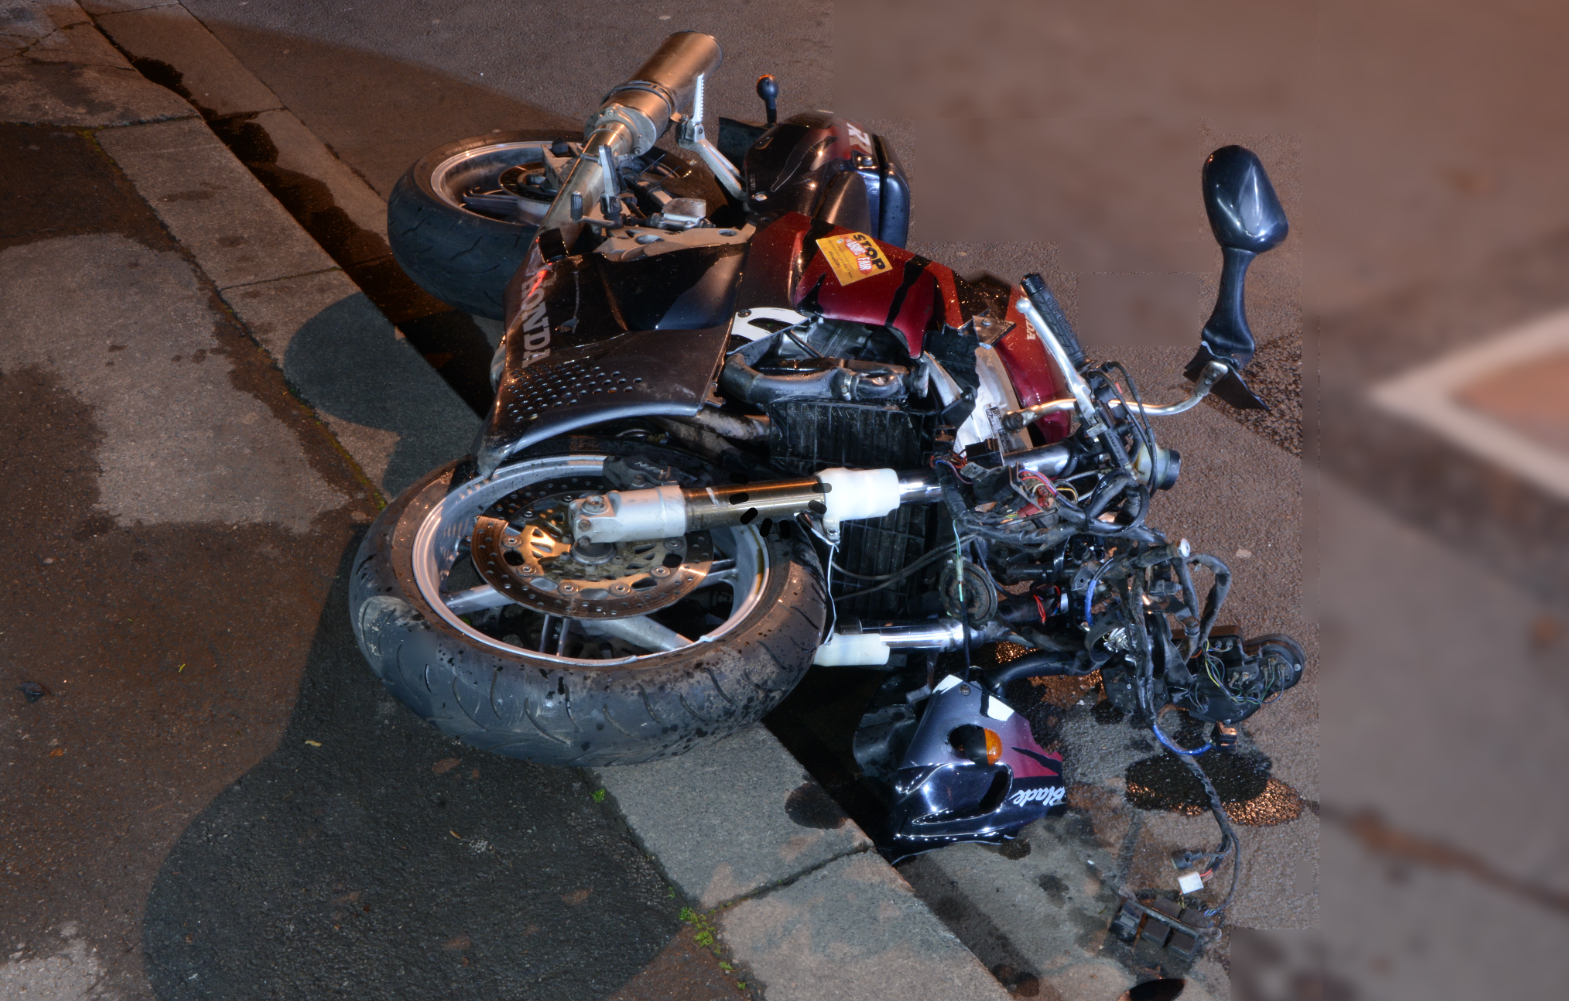 The motorbike ridden by Mr Rice, pictured after the collision (Avon and Somerset Police/PA)